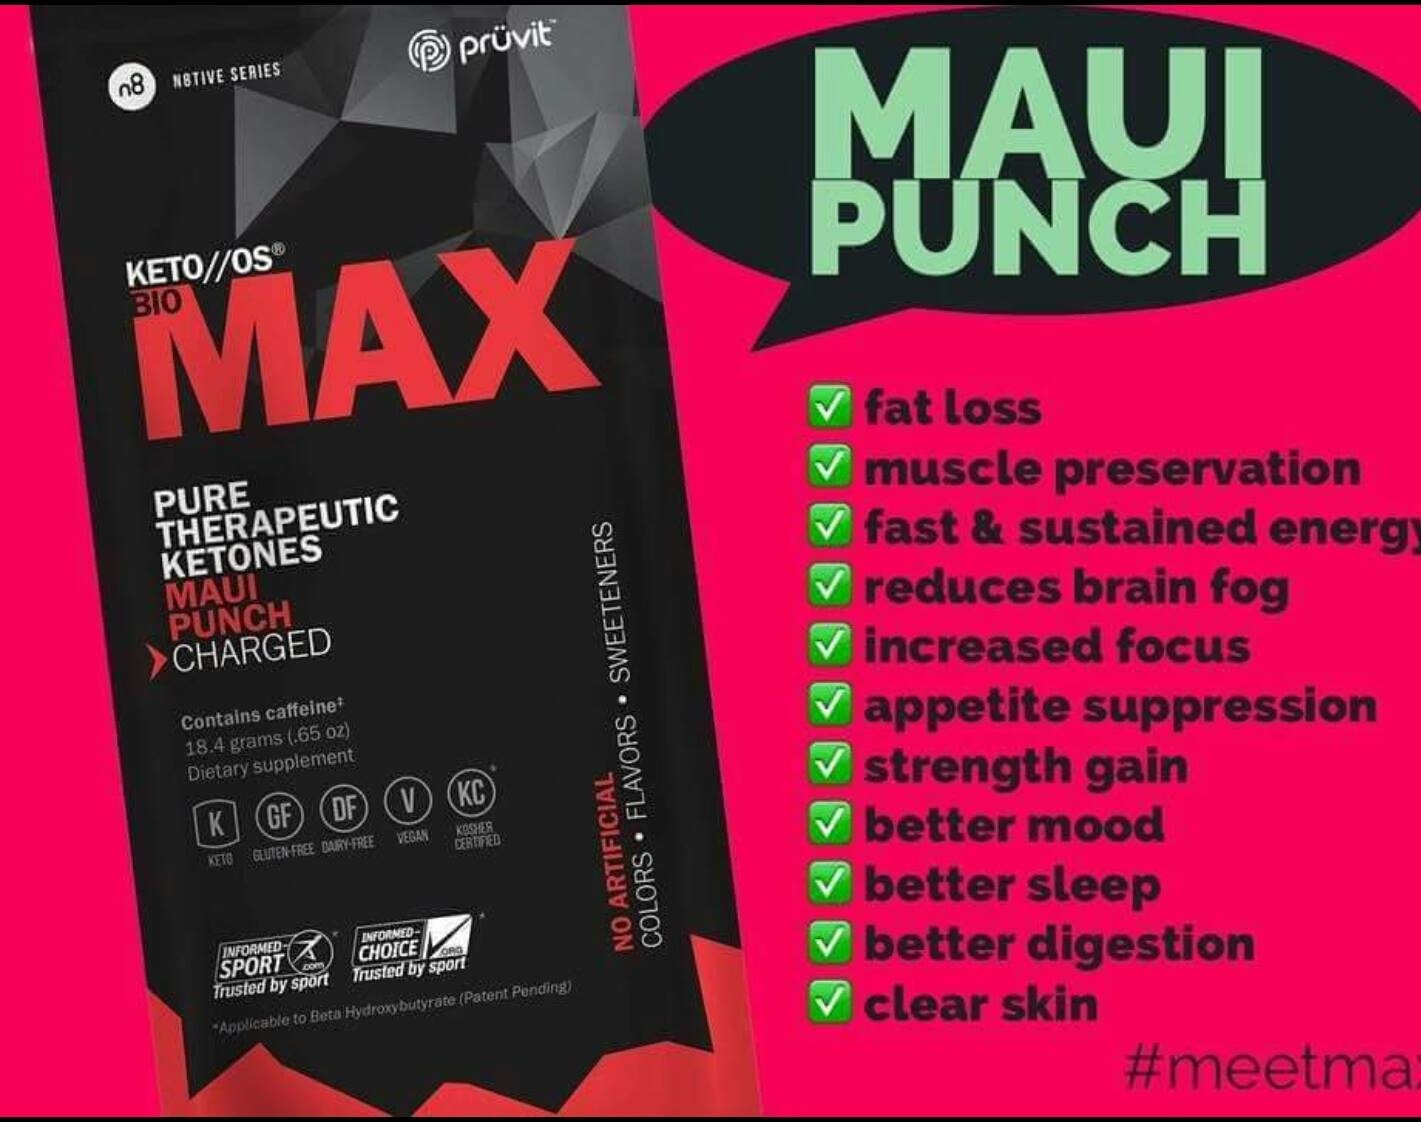 KETO//OS MAX Maui Punch CHARGED, Provides Sharp Energy Boost, Promotes Weight Loss and Burn Fats through Ketosis 9 sachets by Generic